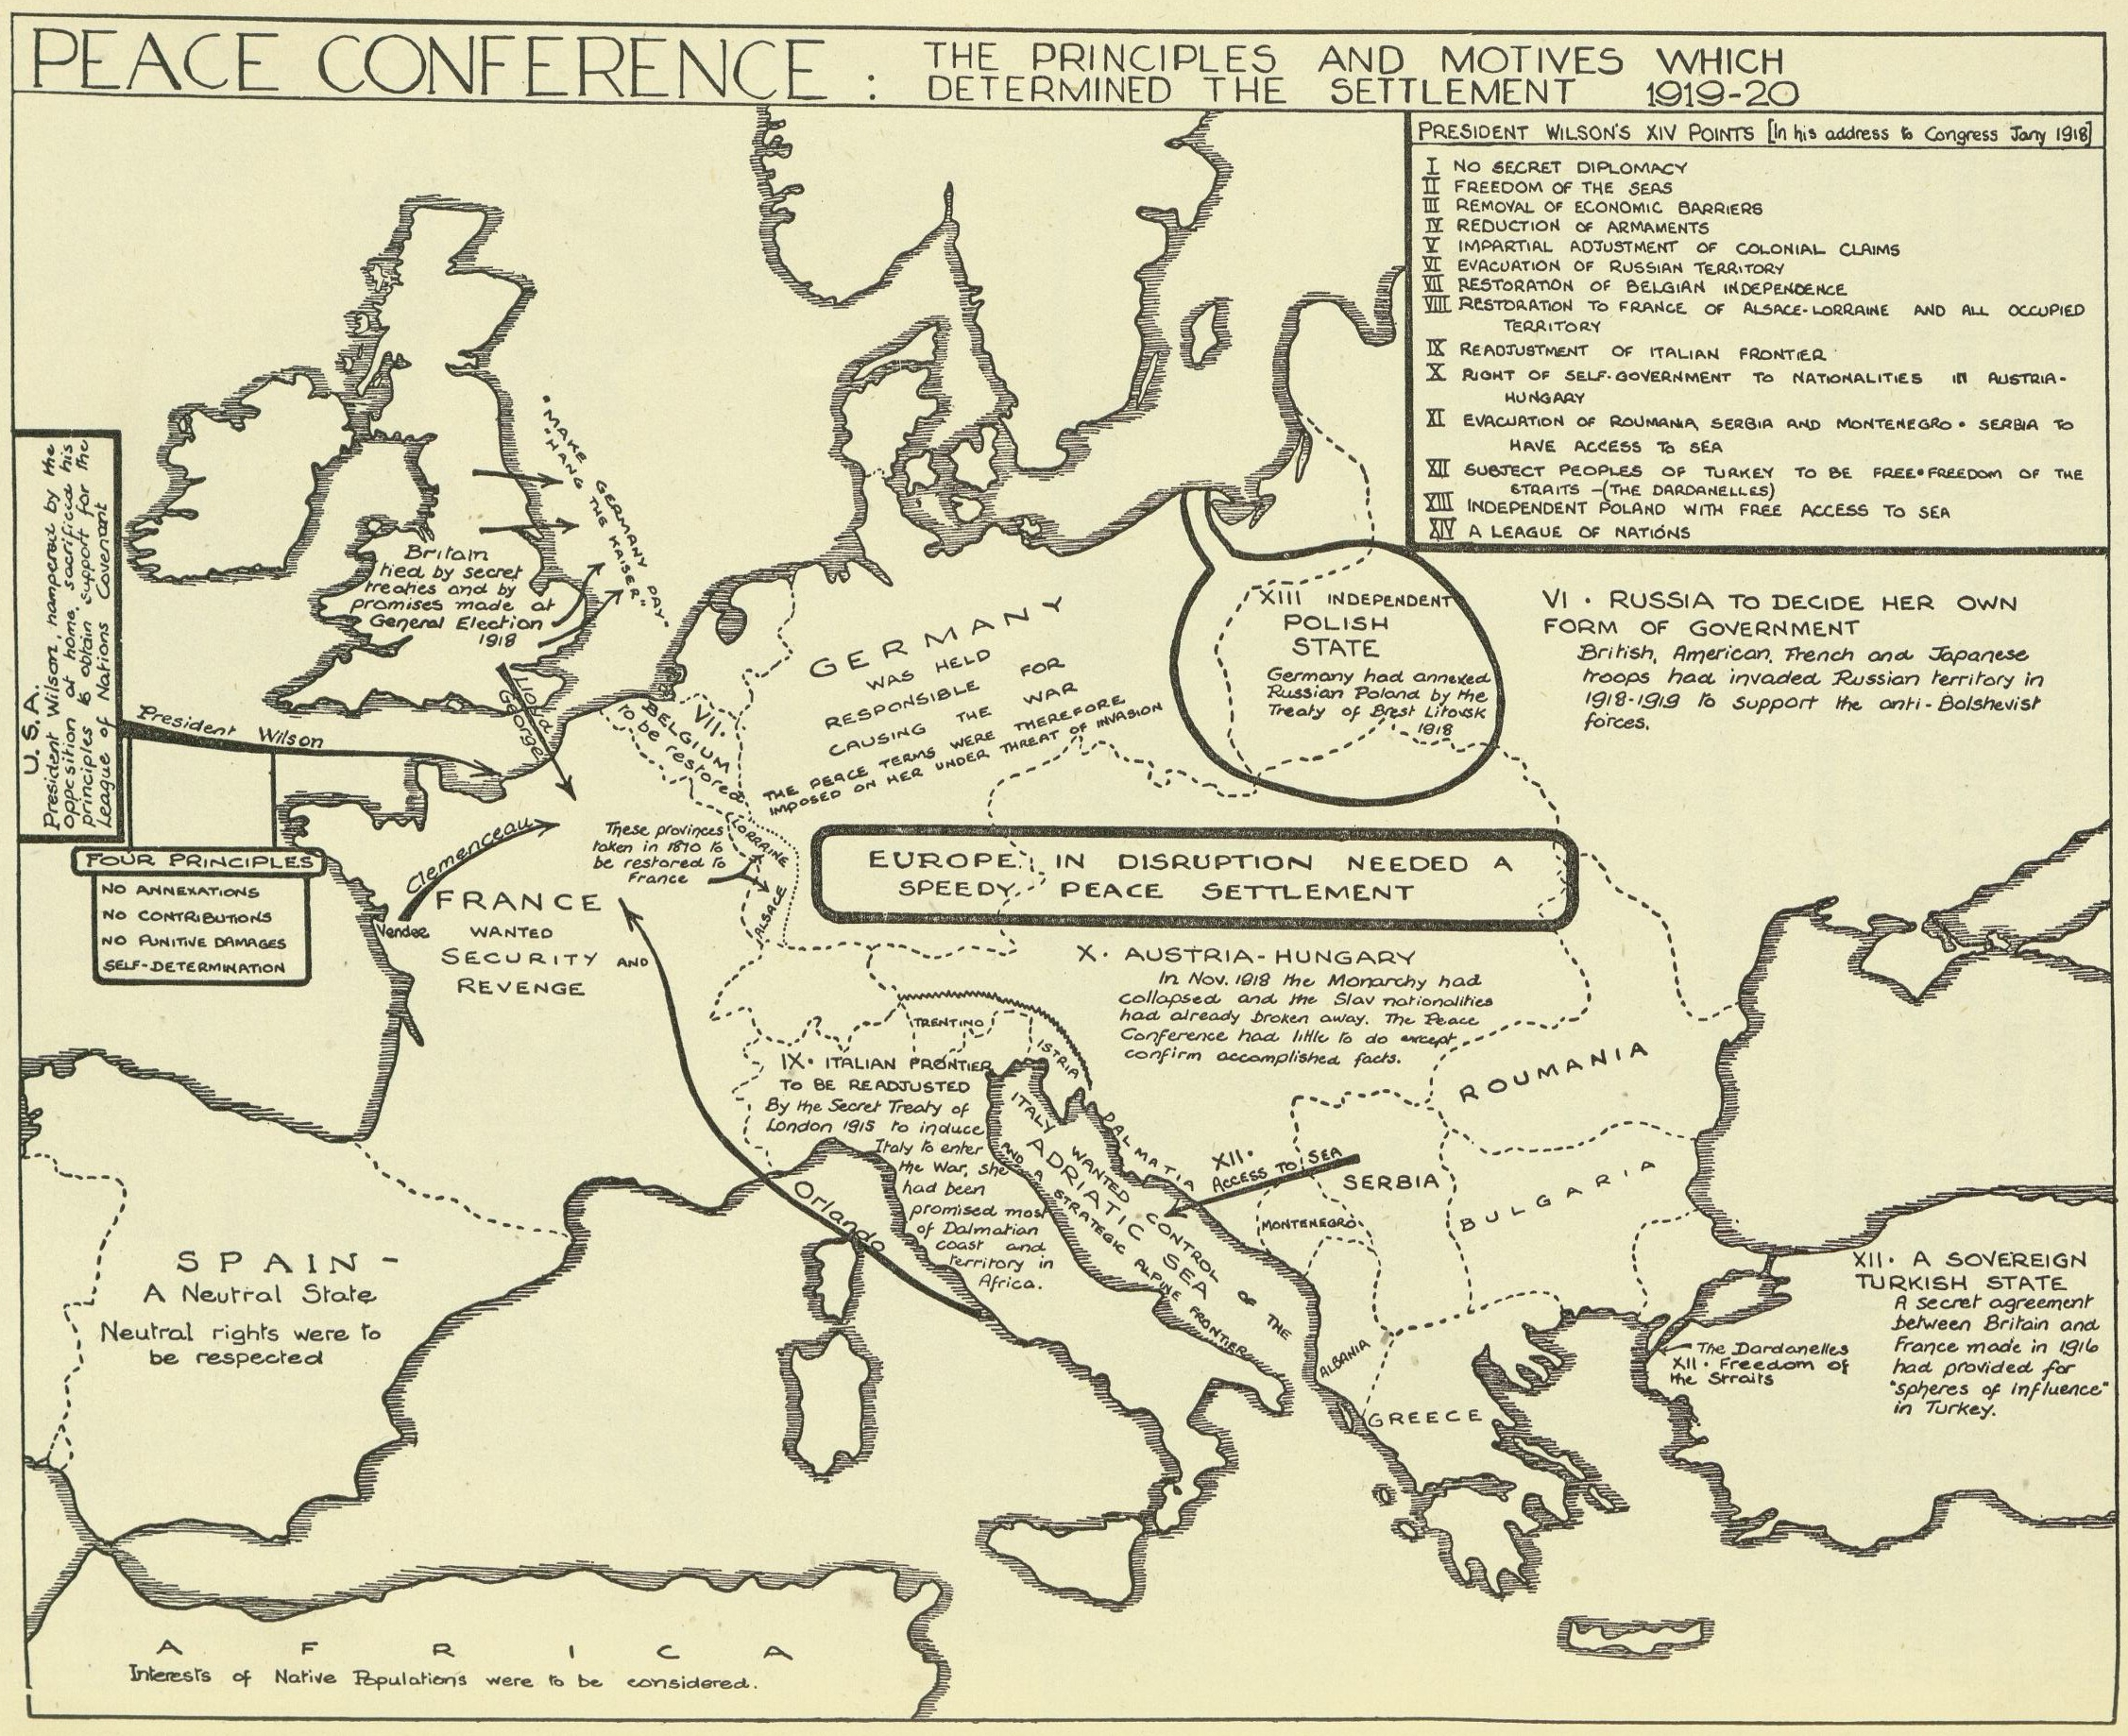 Maps Of Russia And The Soviet Union Revolution And The First World War